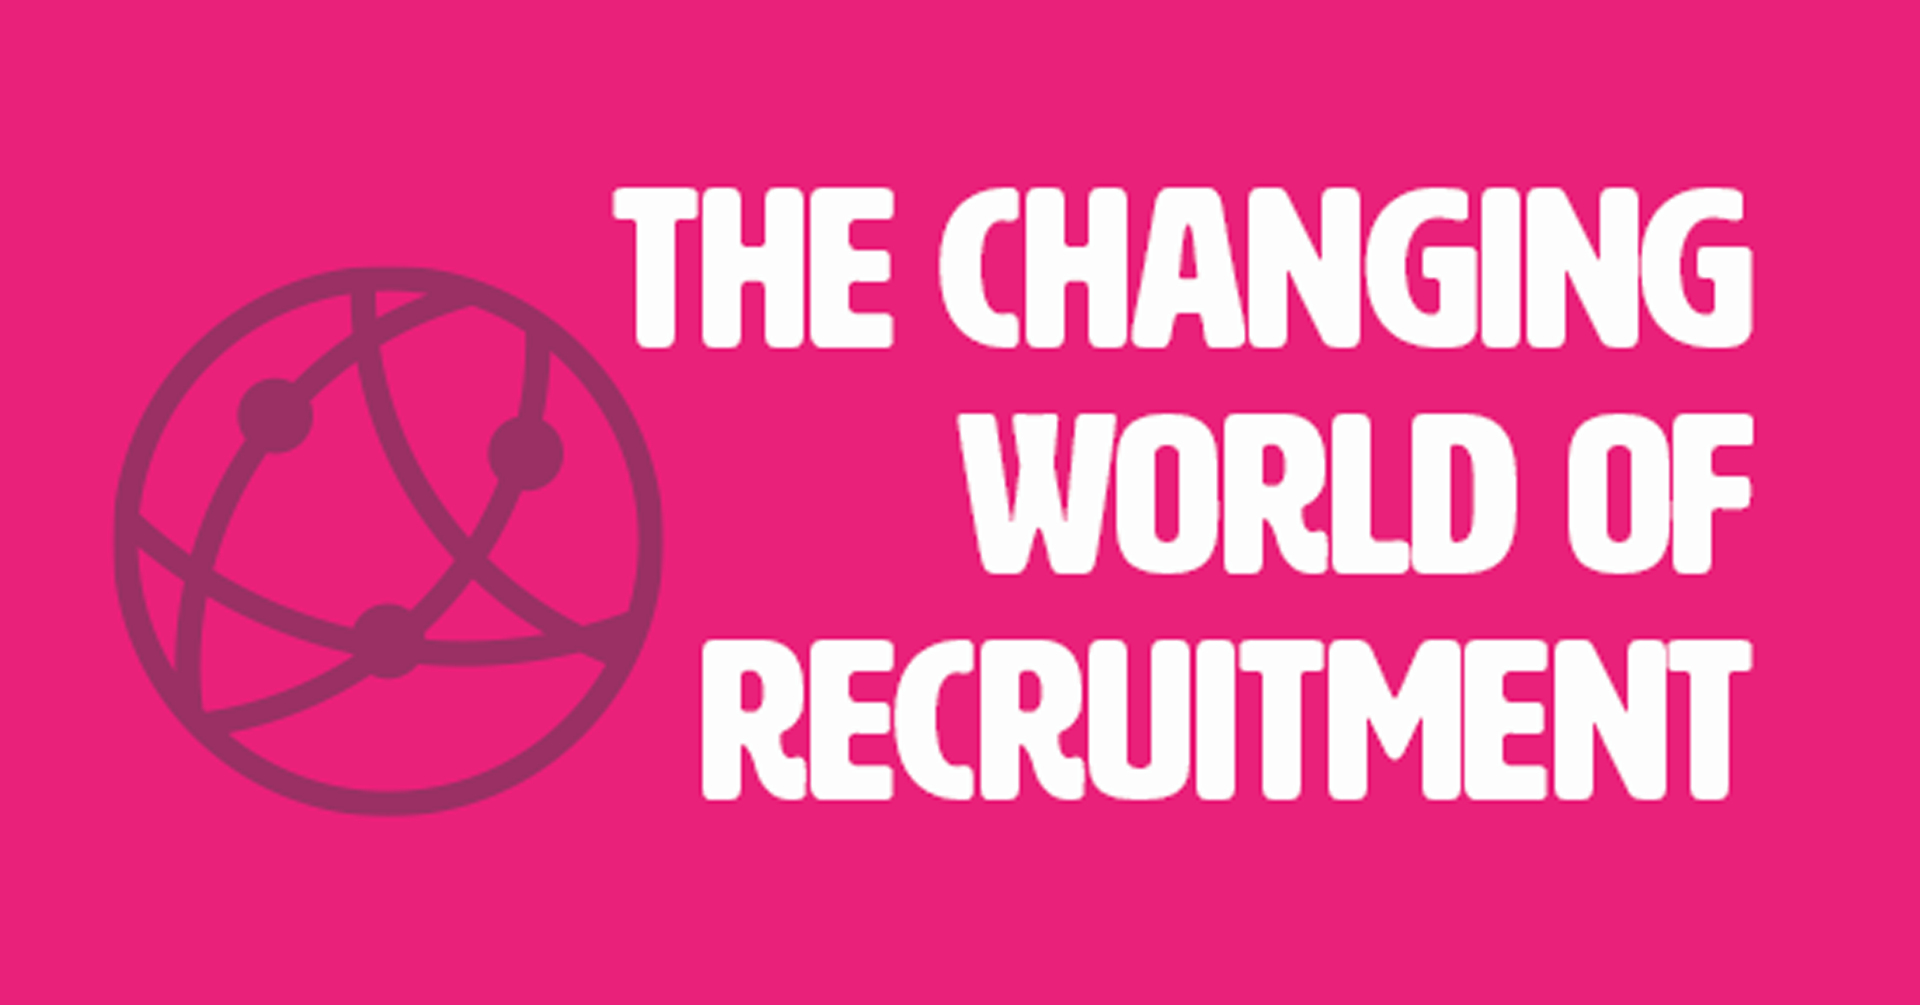 Blog-changing-recruitment-header-